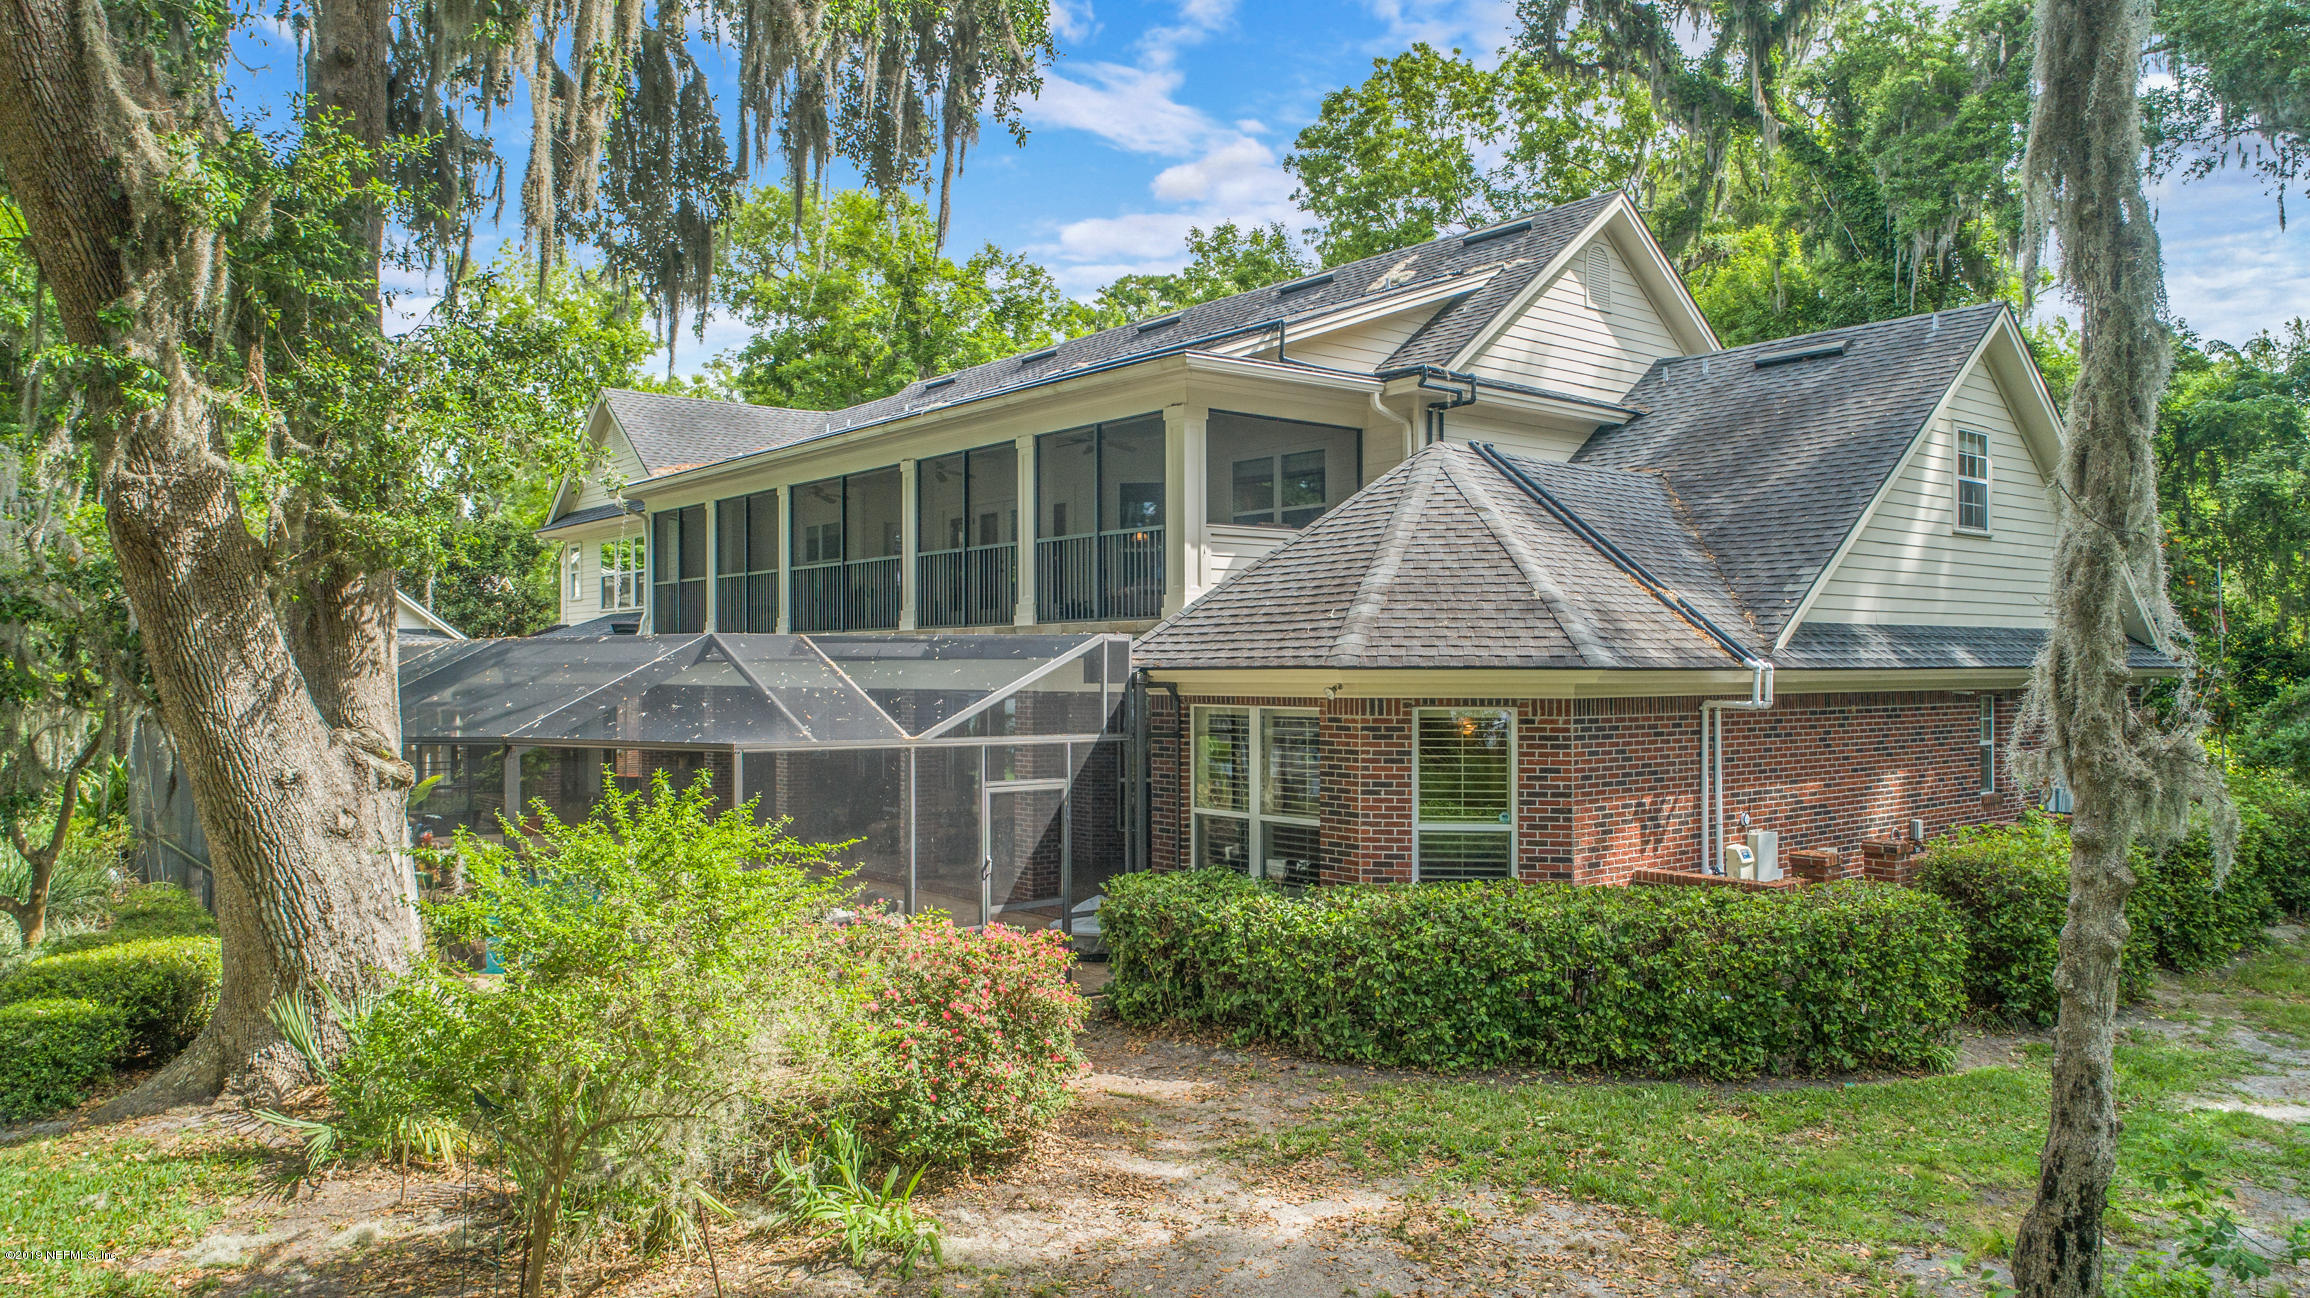 3030 STATE ROAD 13 ST JOHNS - 86